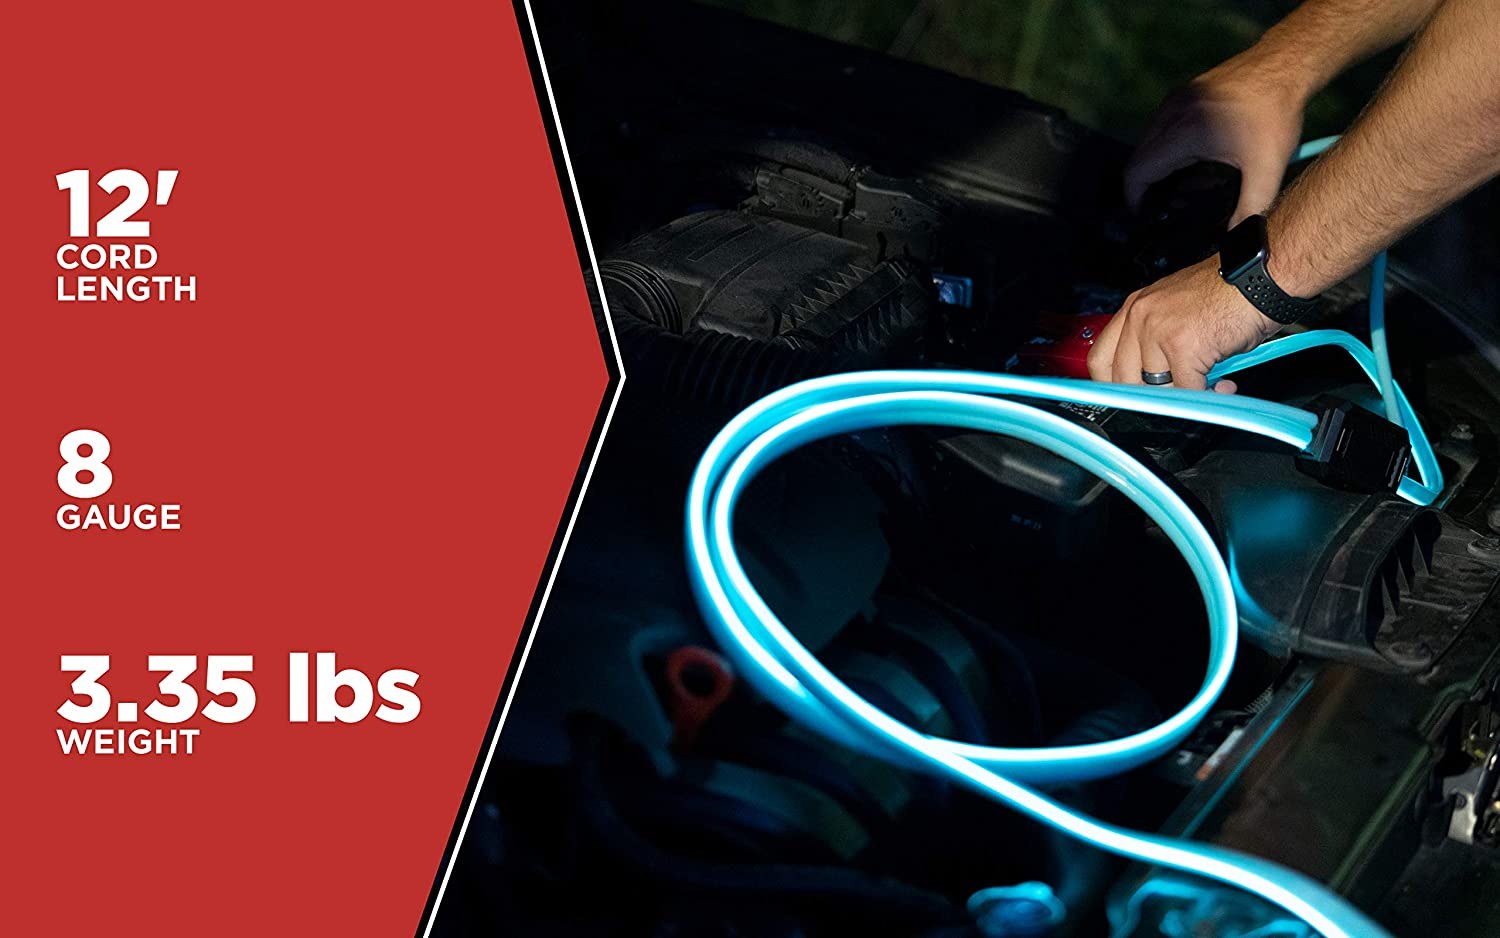 12-Foot 12 Booster Cables With Exclusive Road Glow Technology Road Power 84696812 8 Gauge